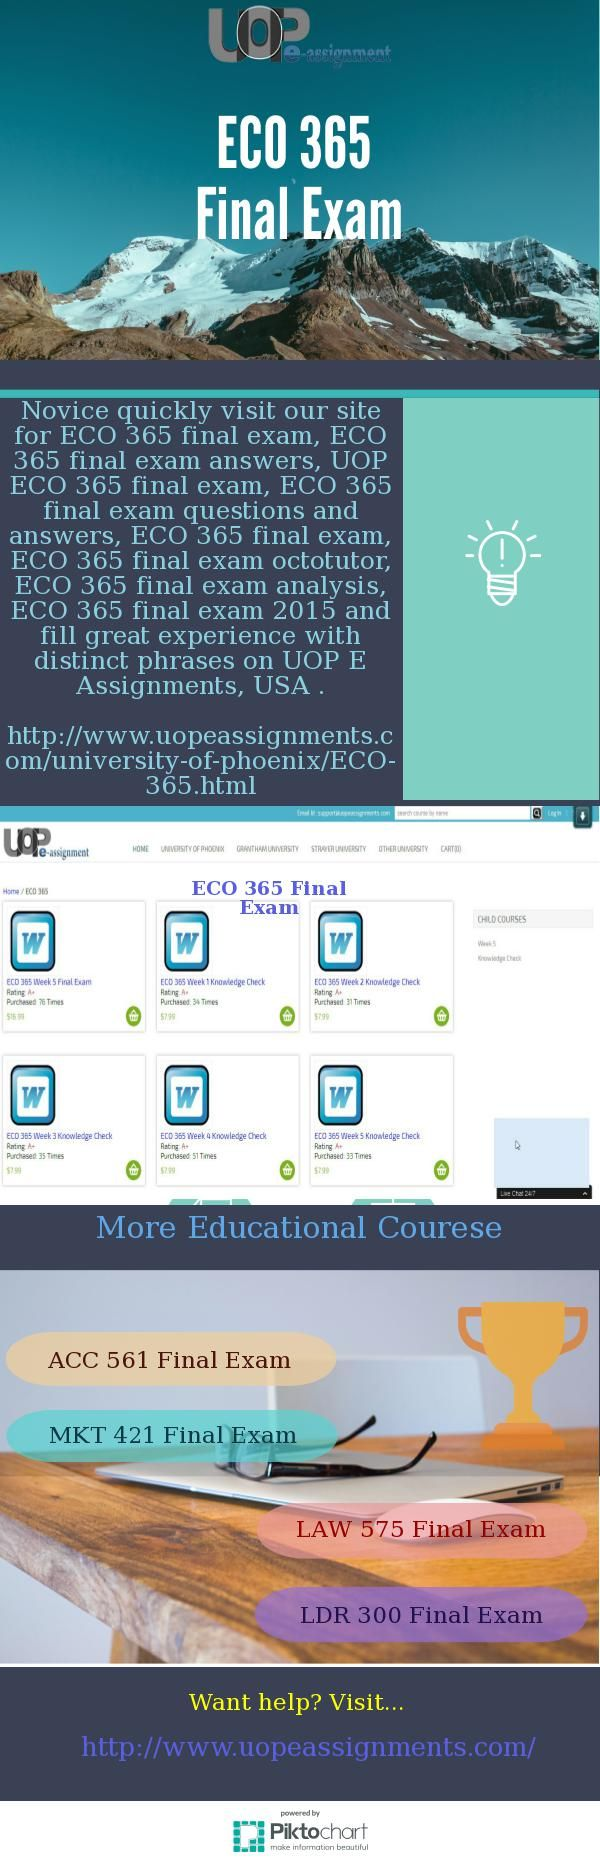 Novice quickly visit our site for ECO 365 final exam, ECO 365 final exam answers, UOP ECO 365 final exam, ECO 365 final exam questions and answers, ECO 365 final exam, ECO 365 final exam octotutor, ECO 365 final exam analysis, ECO 365 final exam 2015 and fill great experience with distinct phrases on UOP E Assignments, USA .  http://www.uopeassignments.com/university-of-phoenix/ECO-365.html